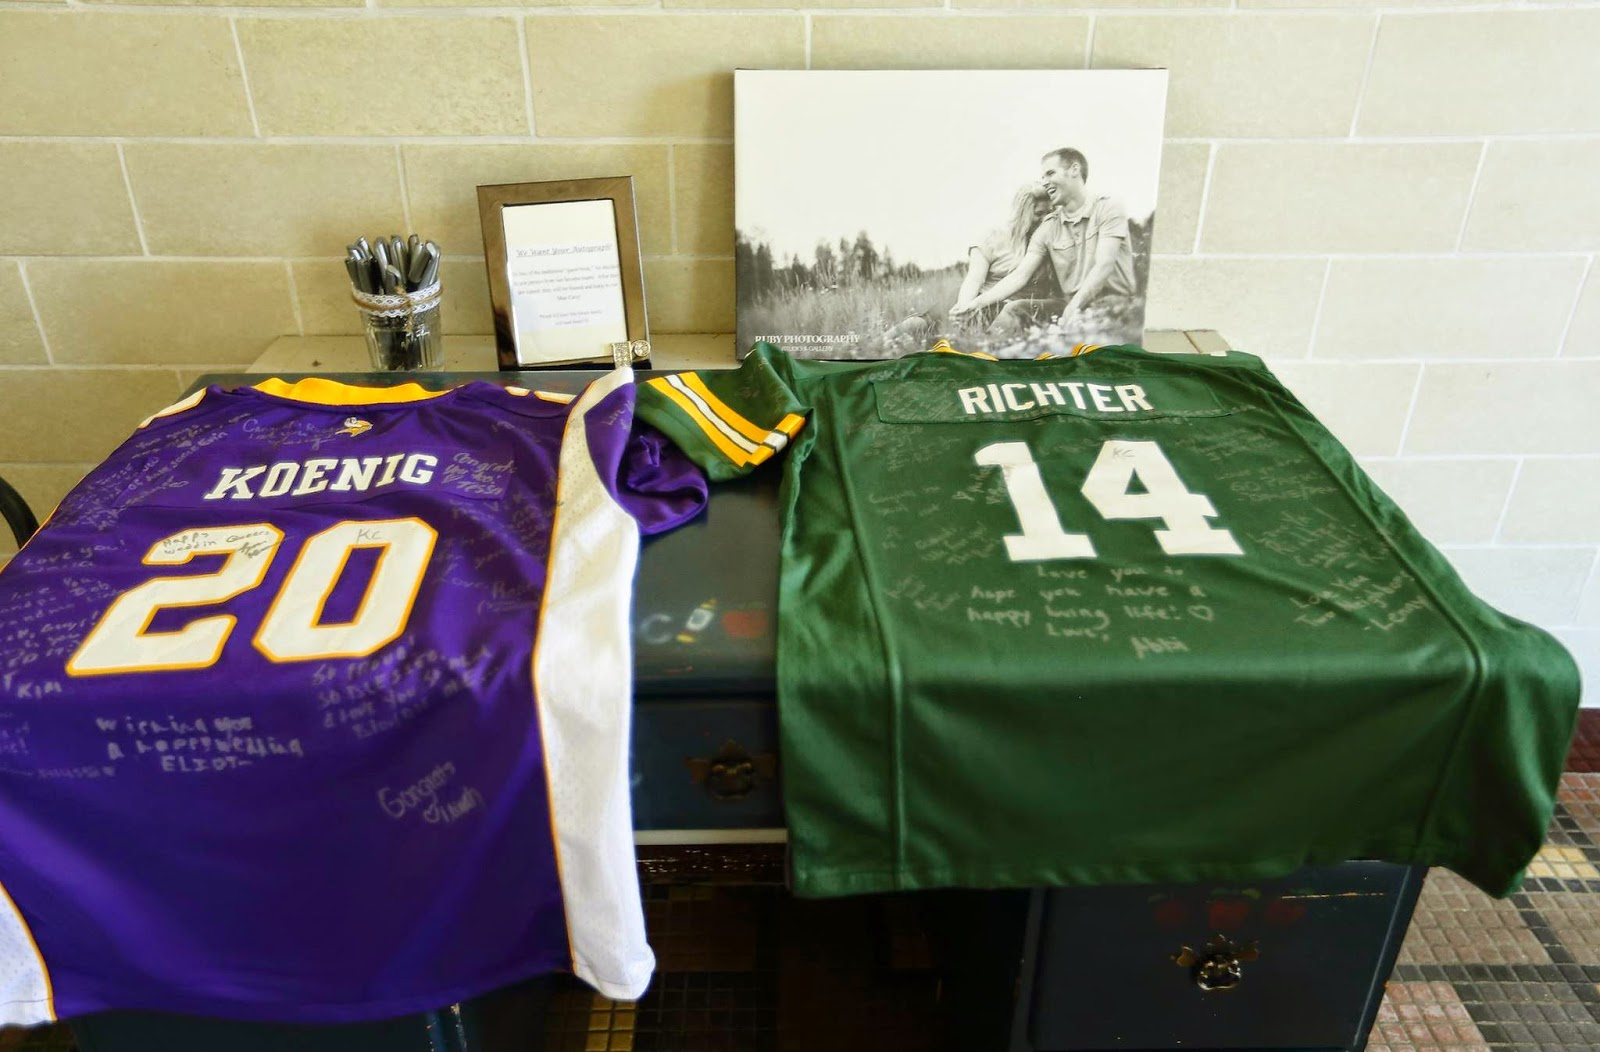 Wedding Guest Book Area with Jerseys & Framed Canvas